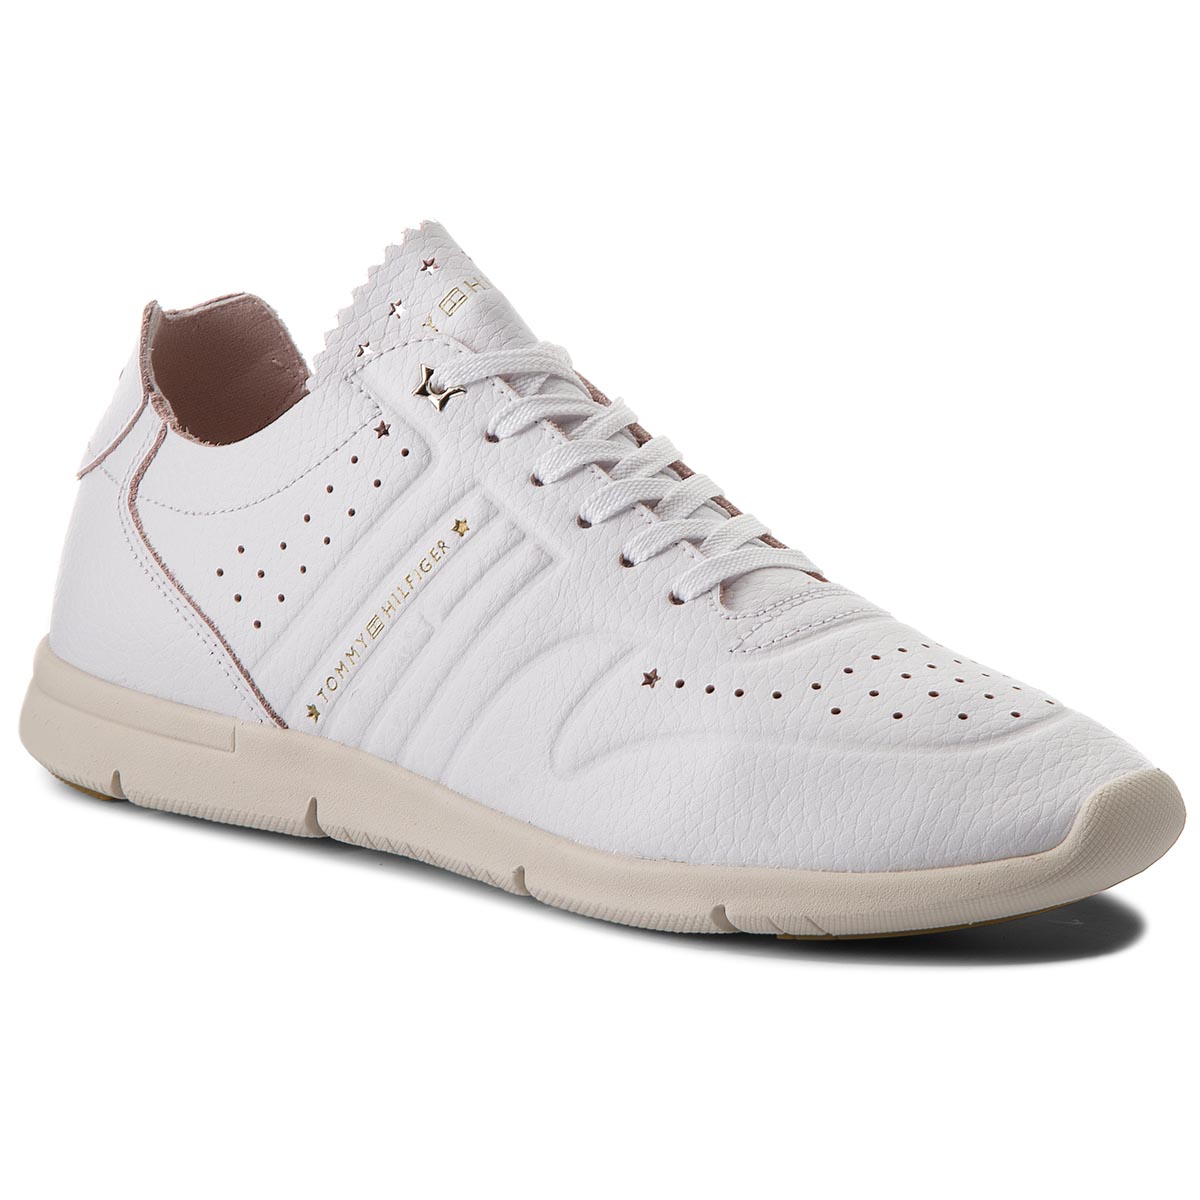 TOMMY HILFIGER Leather Light Weight Sneaker FW0FW03017. TOMMY HILFIGER  Leather Light Weight Sneaker FW0FW03017. TOMMY HILFIGER ... 53b378b119